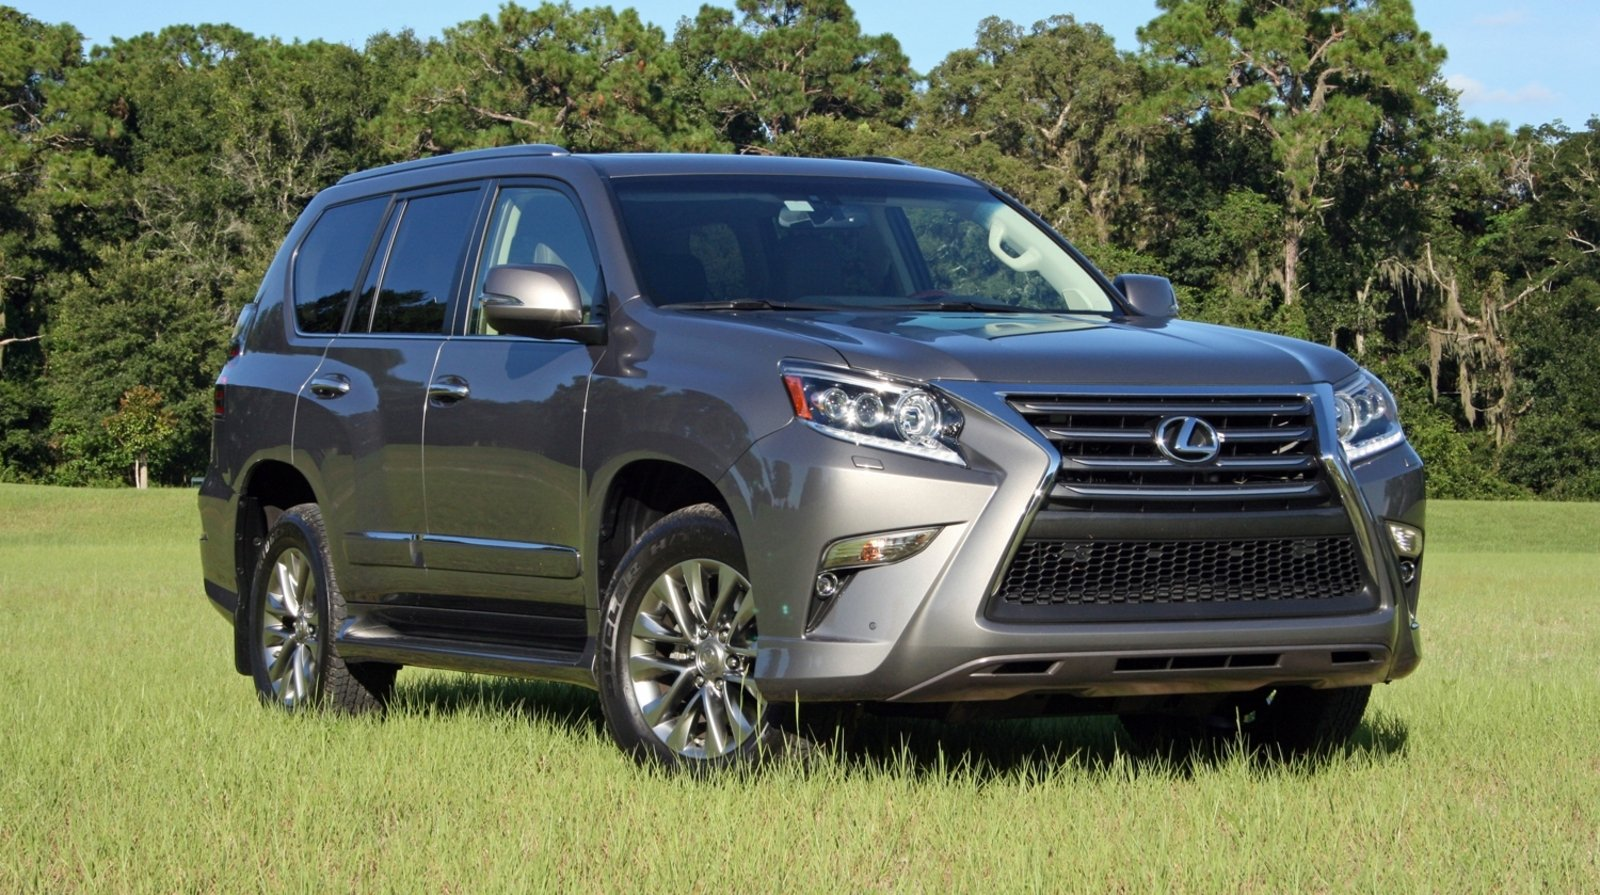 2014 lexus gx460 driven review top speed. Black Bedroom Furniture Sets. Home Design Ideas